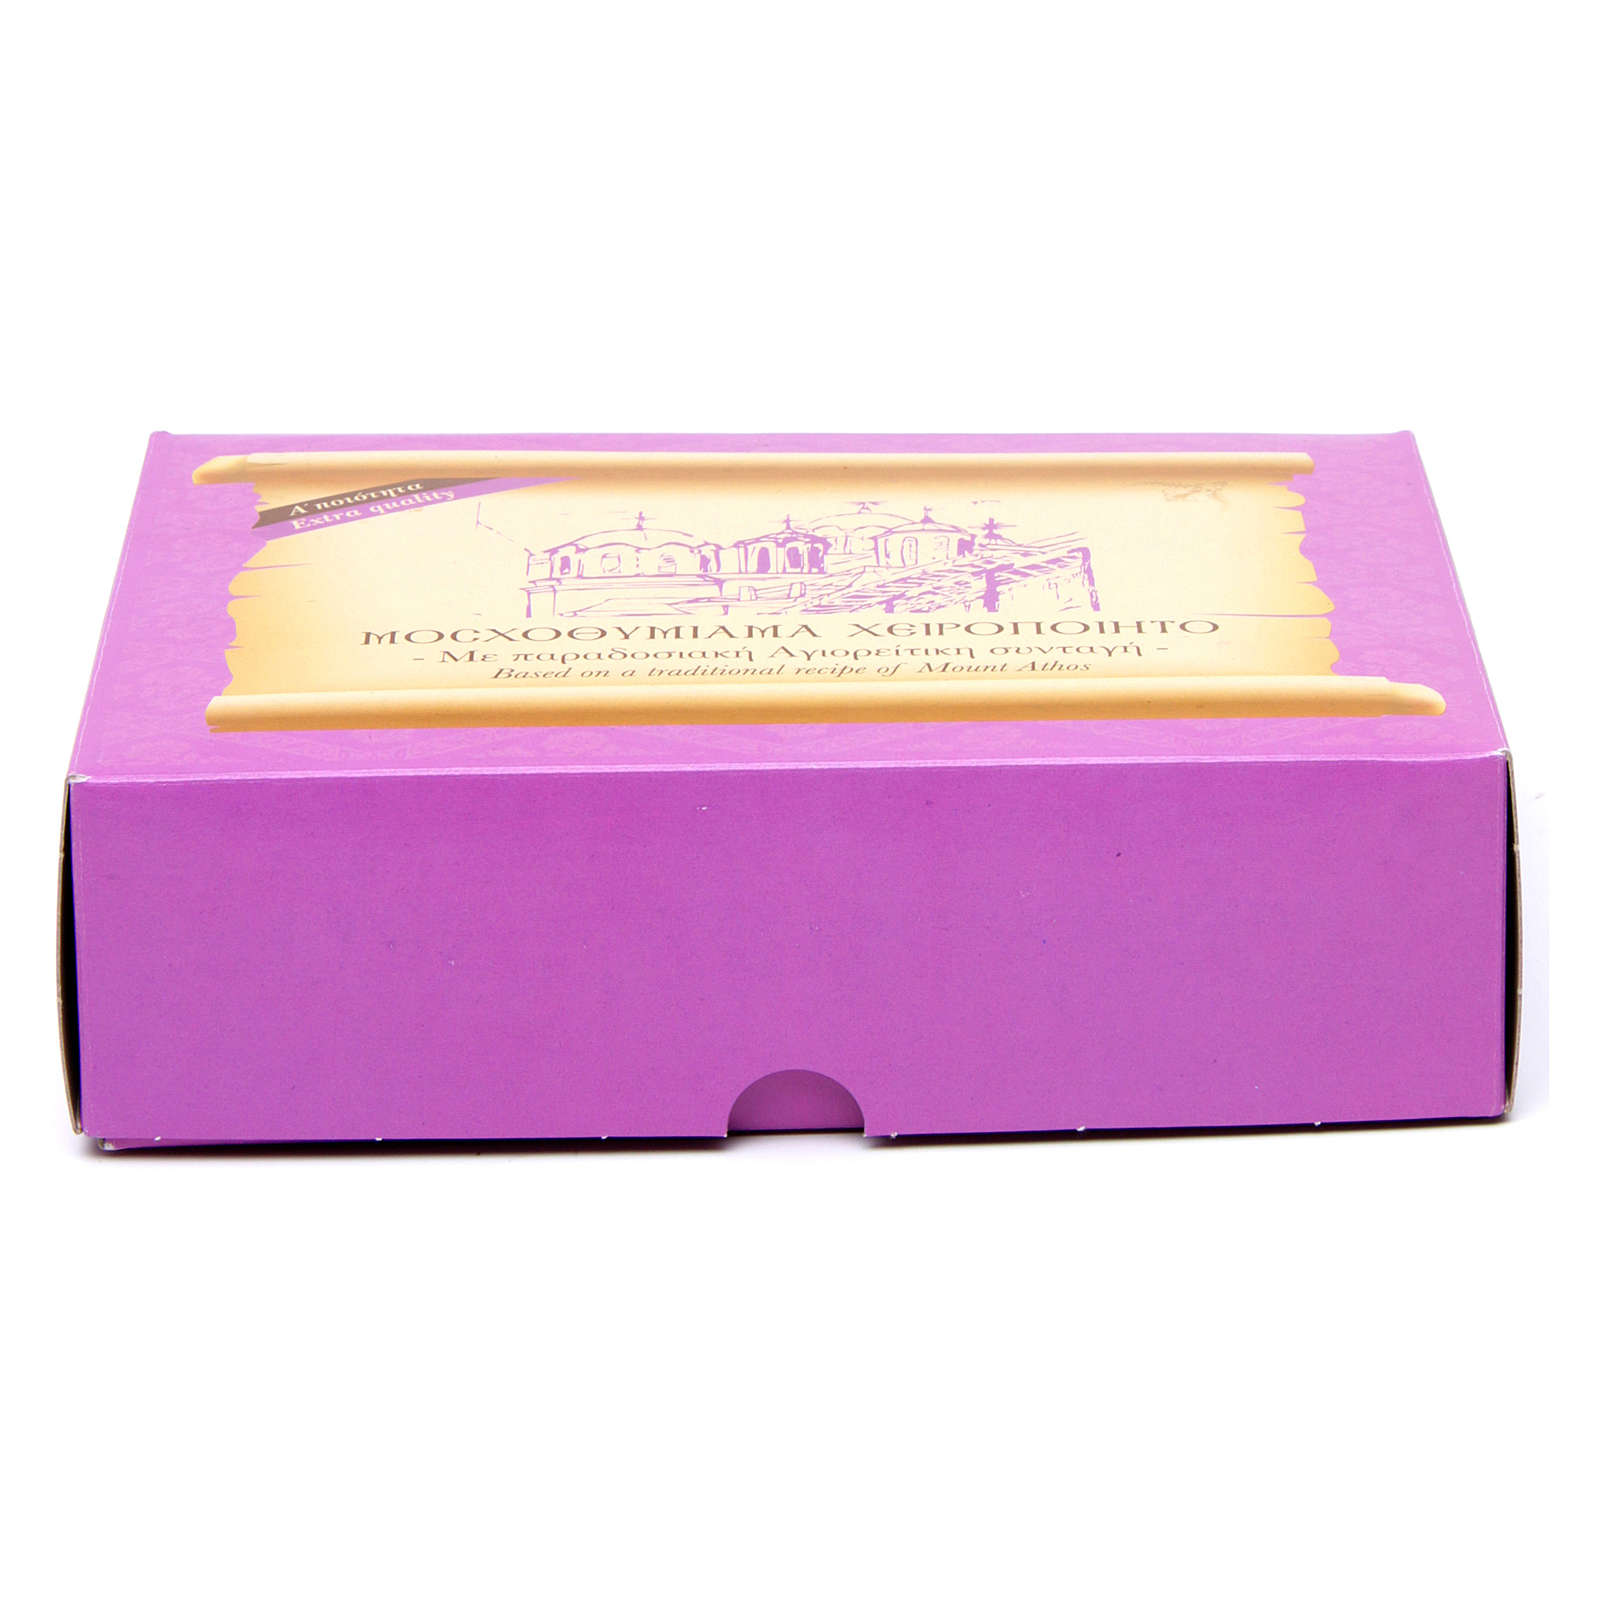 Liliac-scented Greek incense 1 kg 3